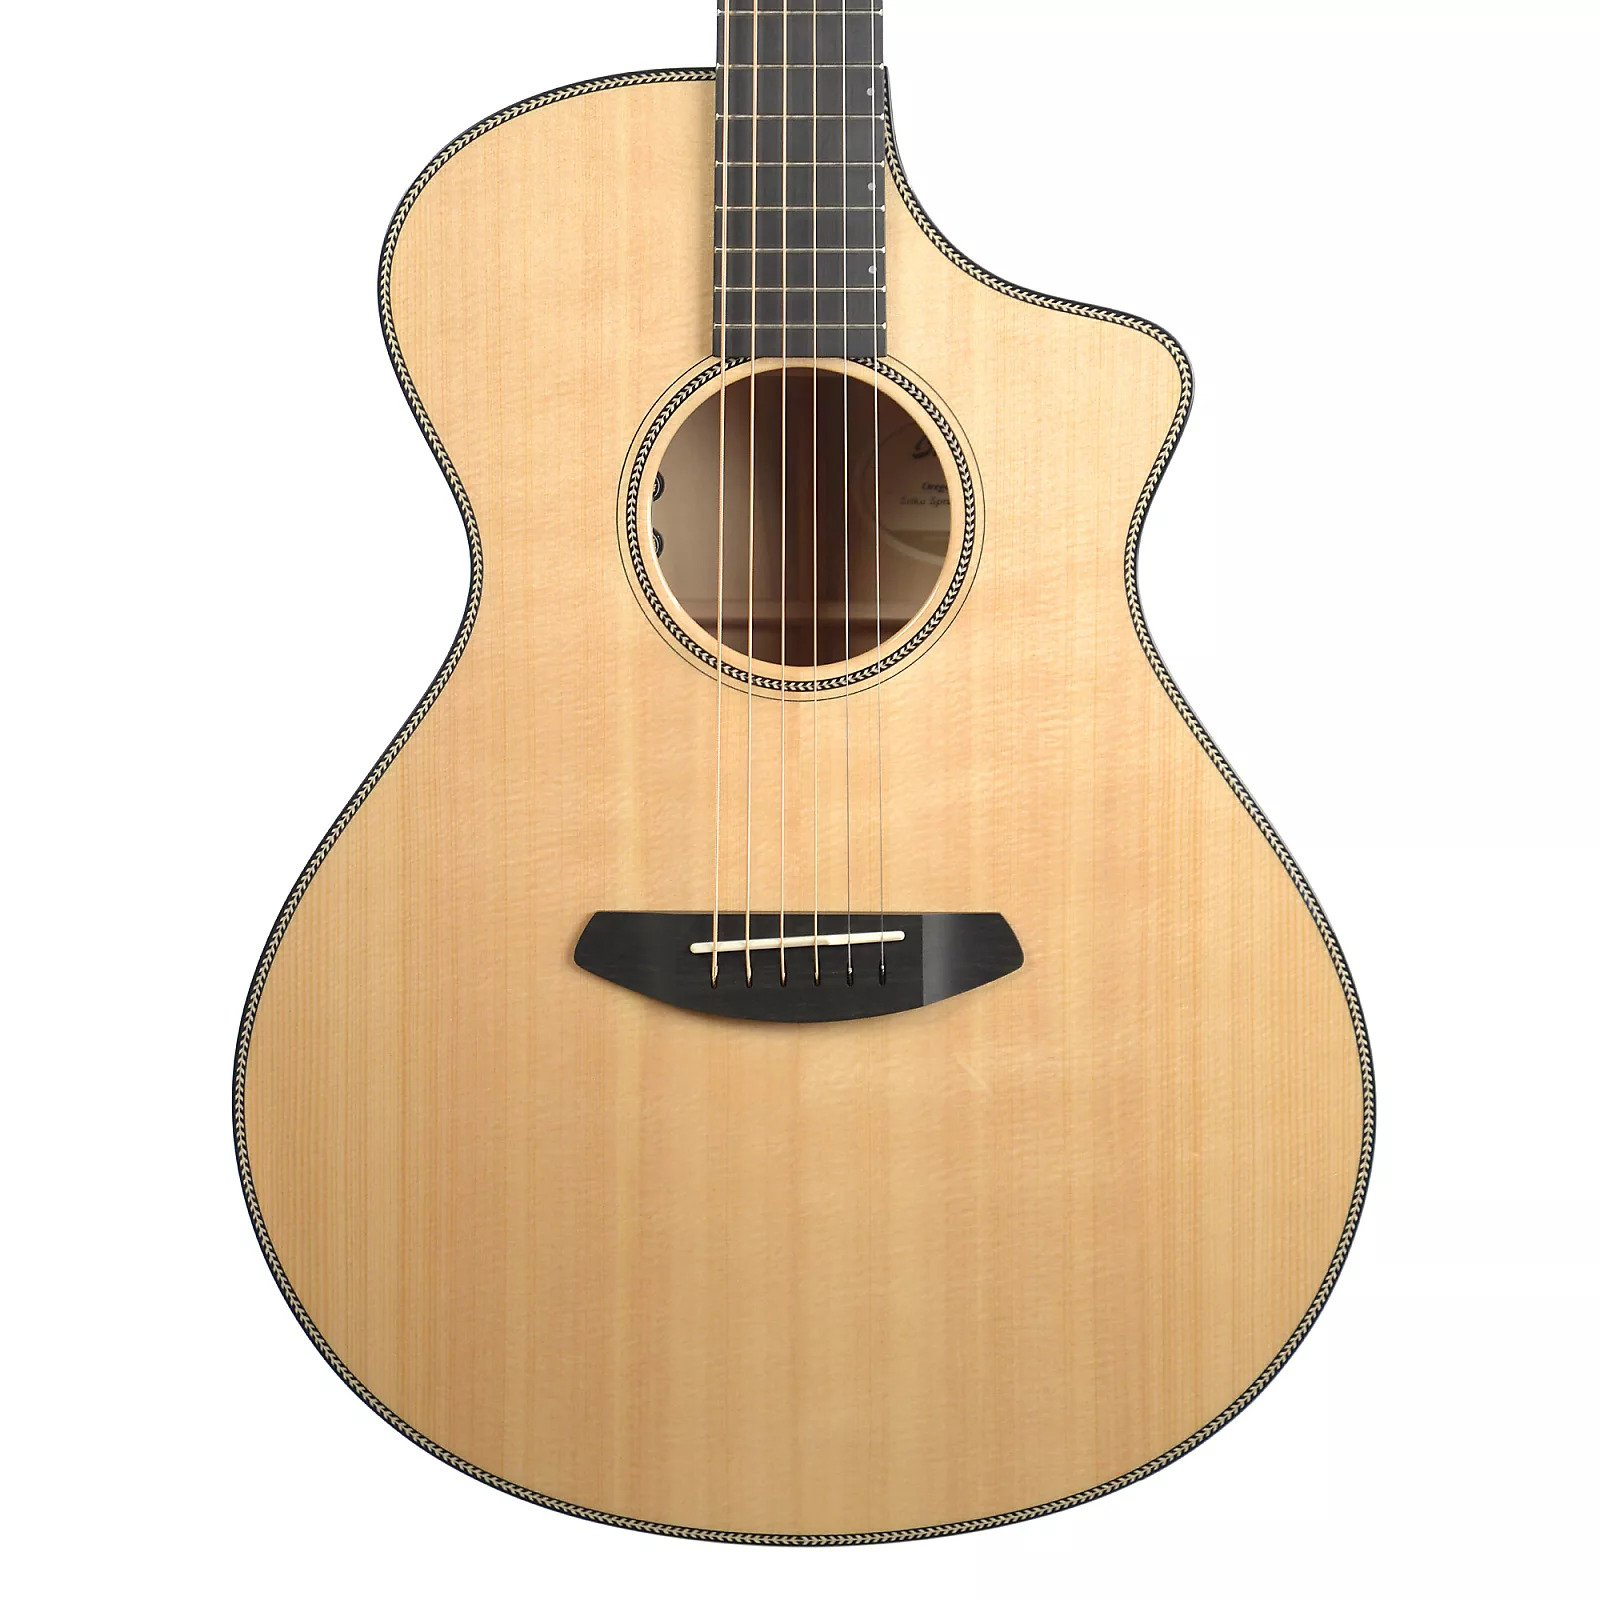 breedlove oregon concert ce guitar on a white background